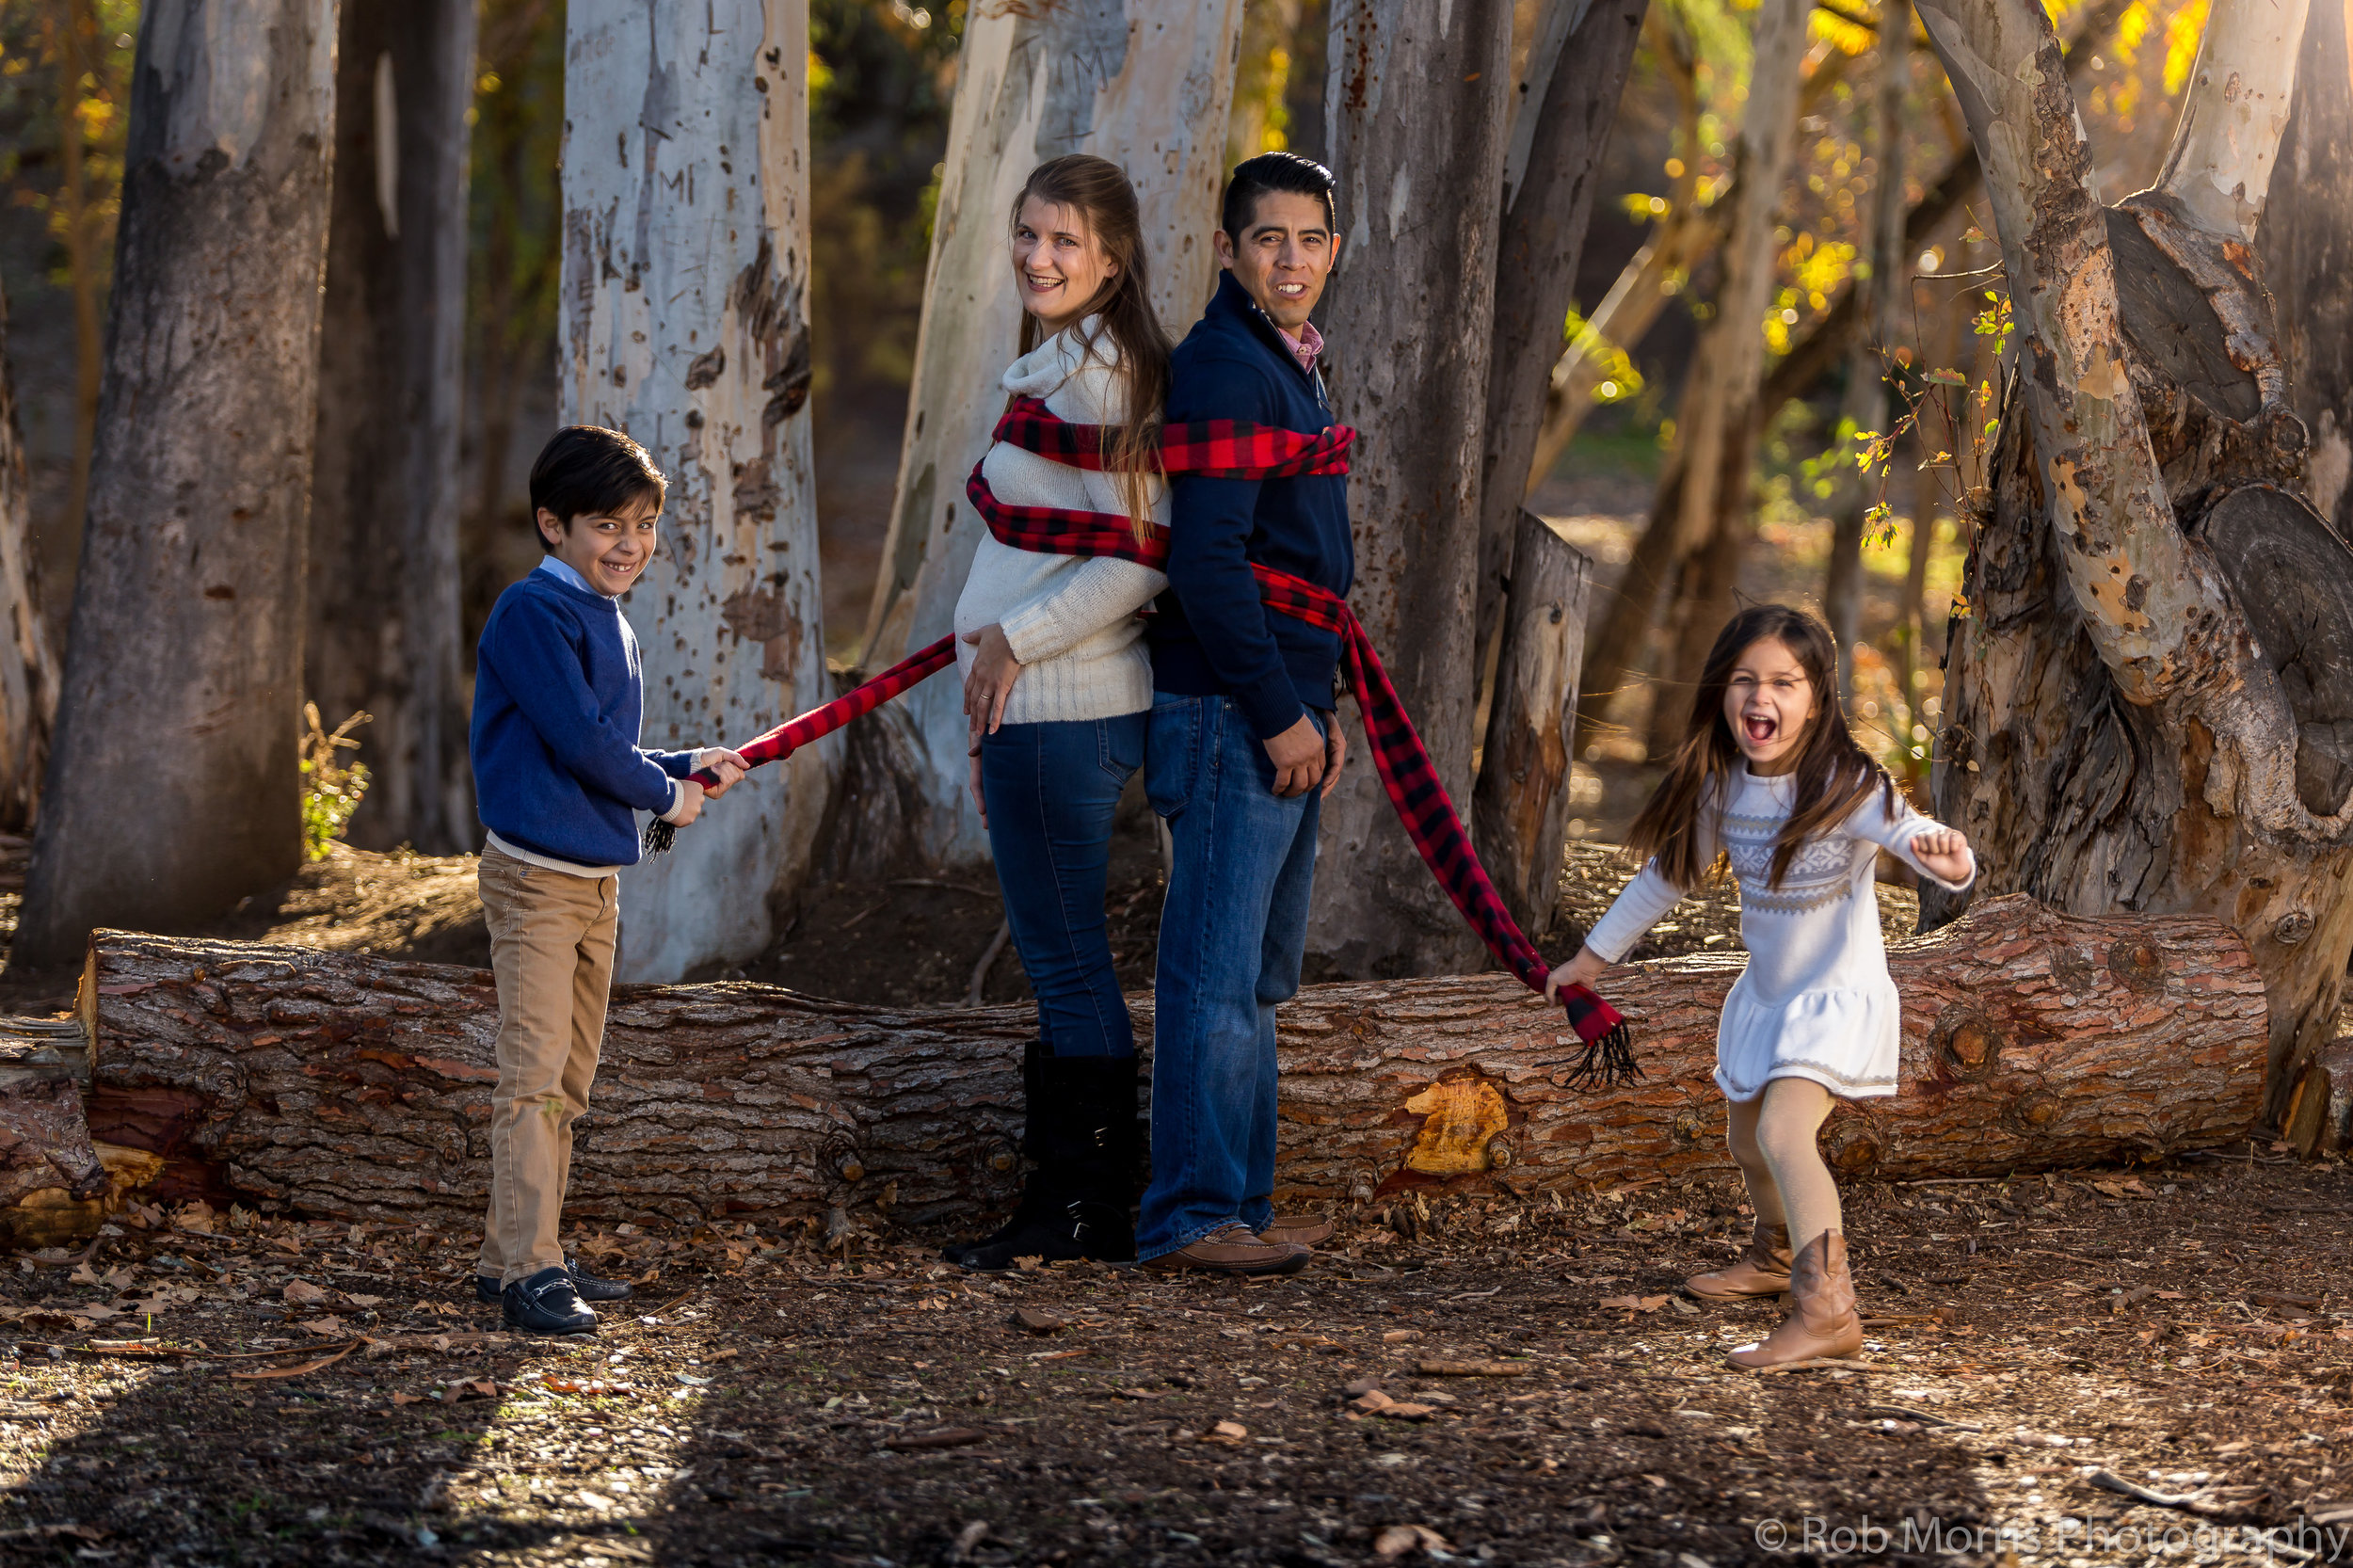 Click here to see our family portrait work, and find out how to have us take pictures of your amazing family!